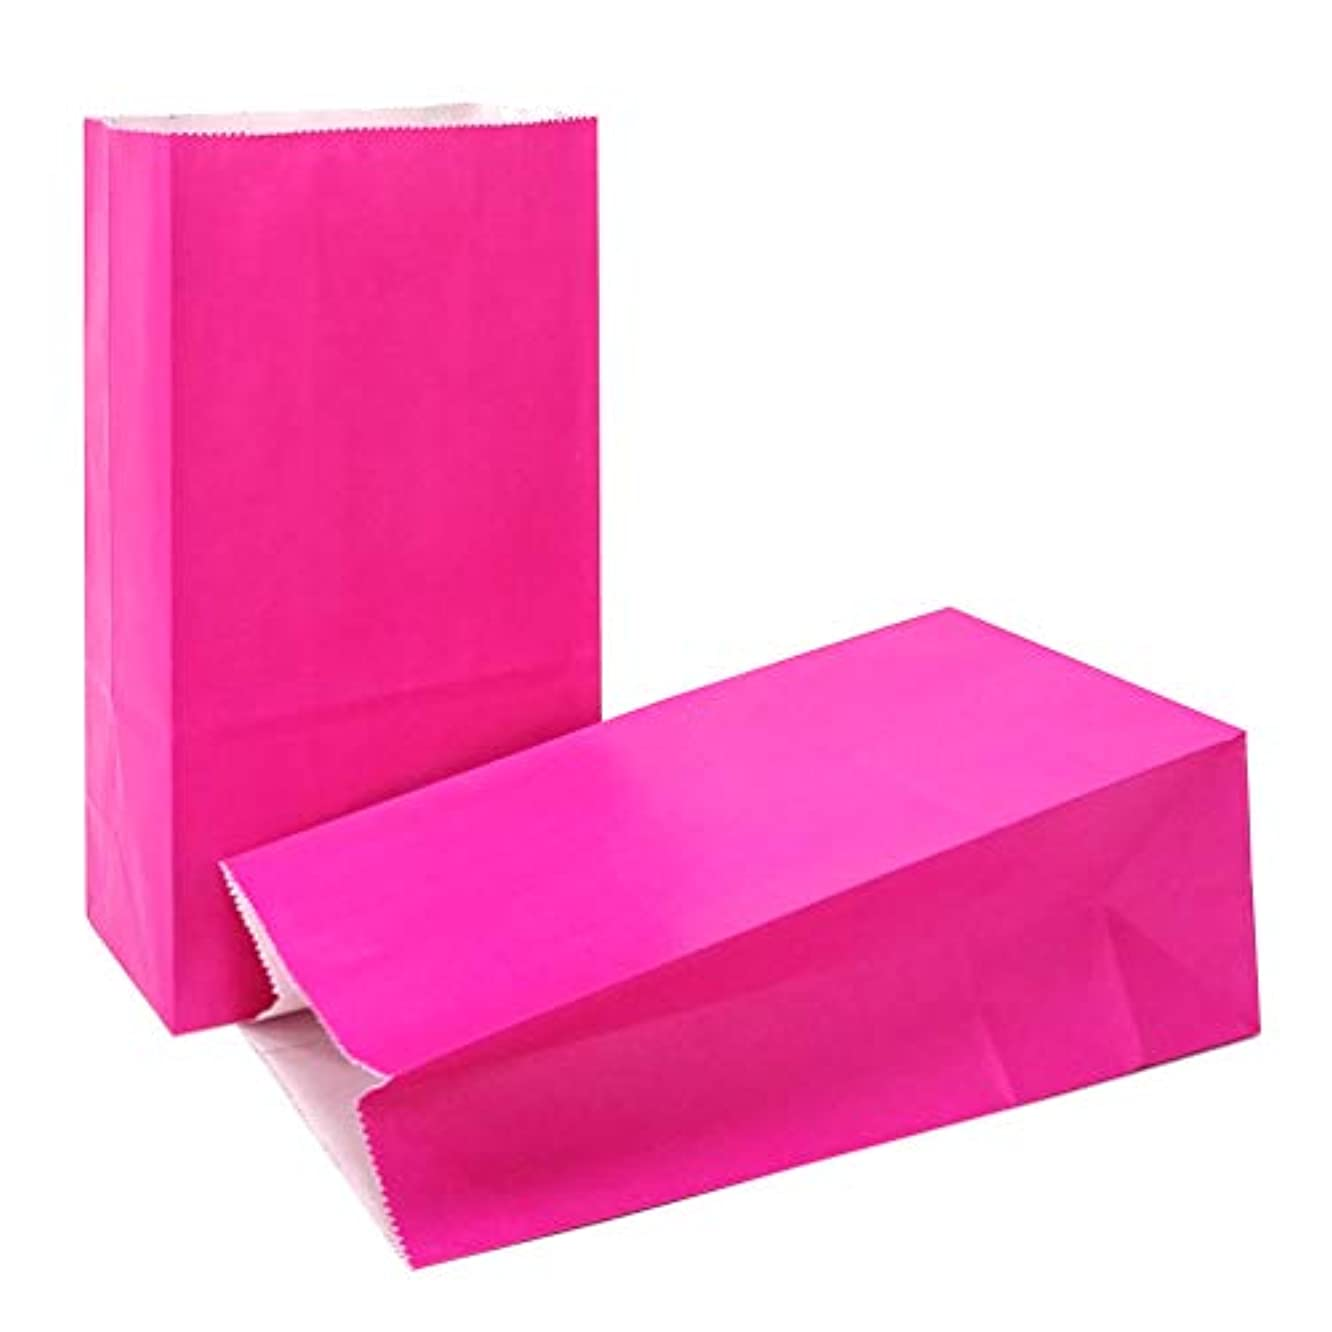 KEYYOOMY 50 CT Small Paper Bags Magenta Party Favor Bags for Wedding Baby Shower Kid's Birthday Party ( Pink, 50 CT, 3.1 X 5.1 X 9.4 in)